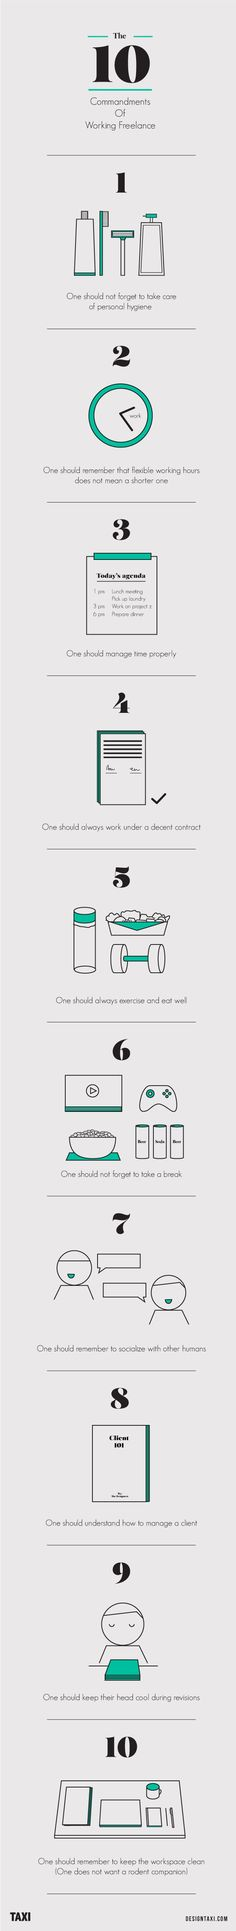 Infographic: The 10 Commandments Of Working Freelance - DesignTAXI.com